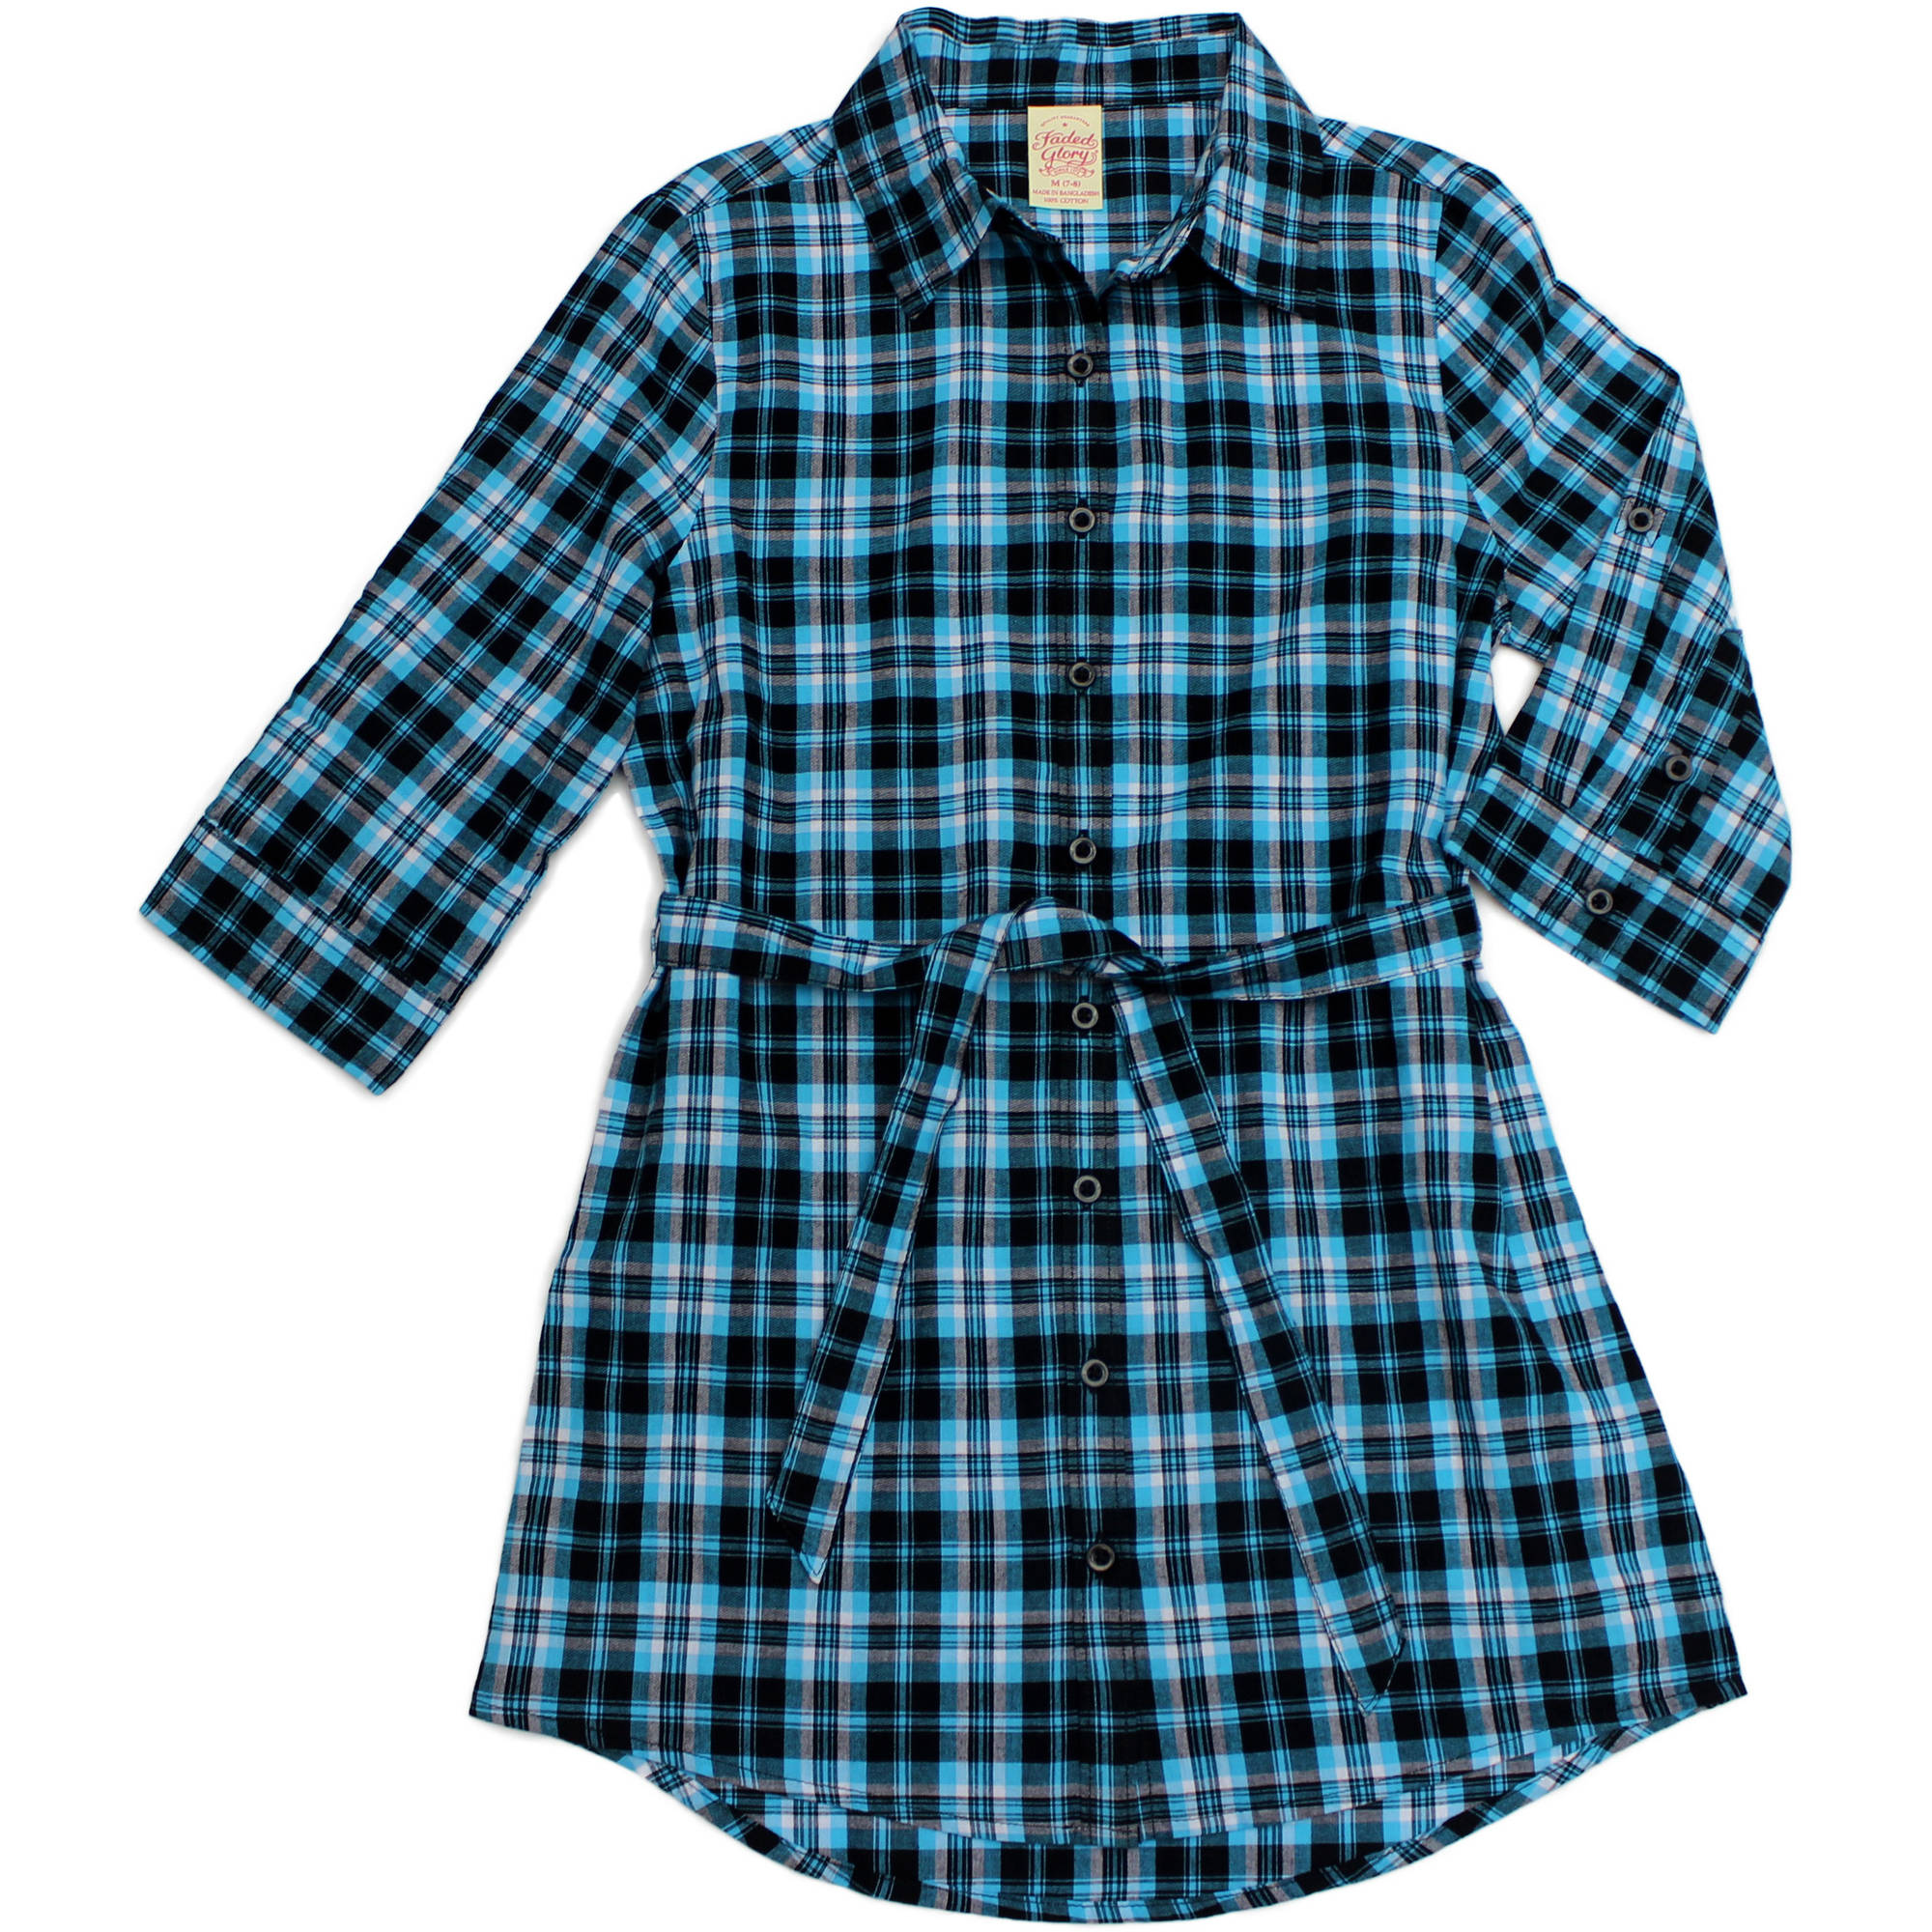 Faded Glory Girls' Plaid Tunic